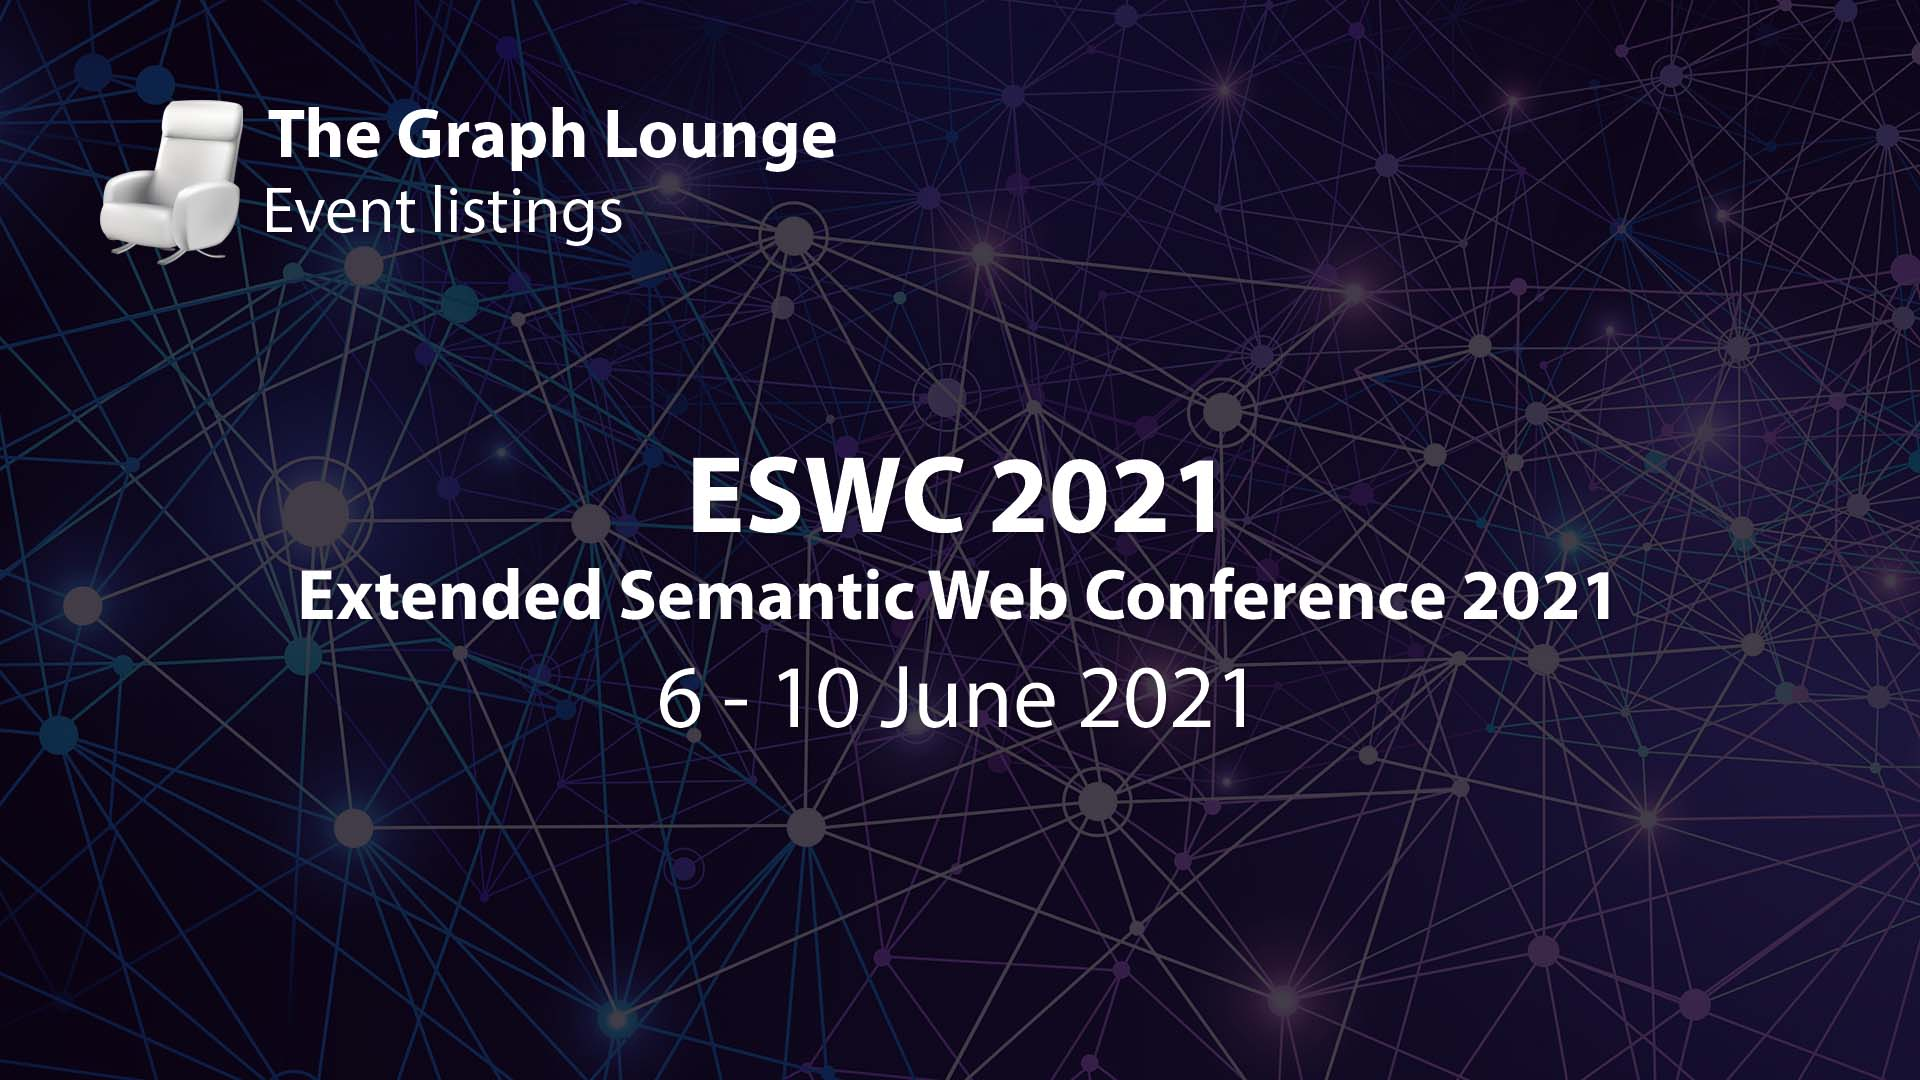 ESWC 2021 (Extended Semantic Web Conference 2021)